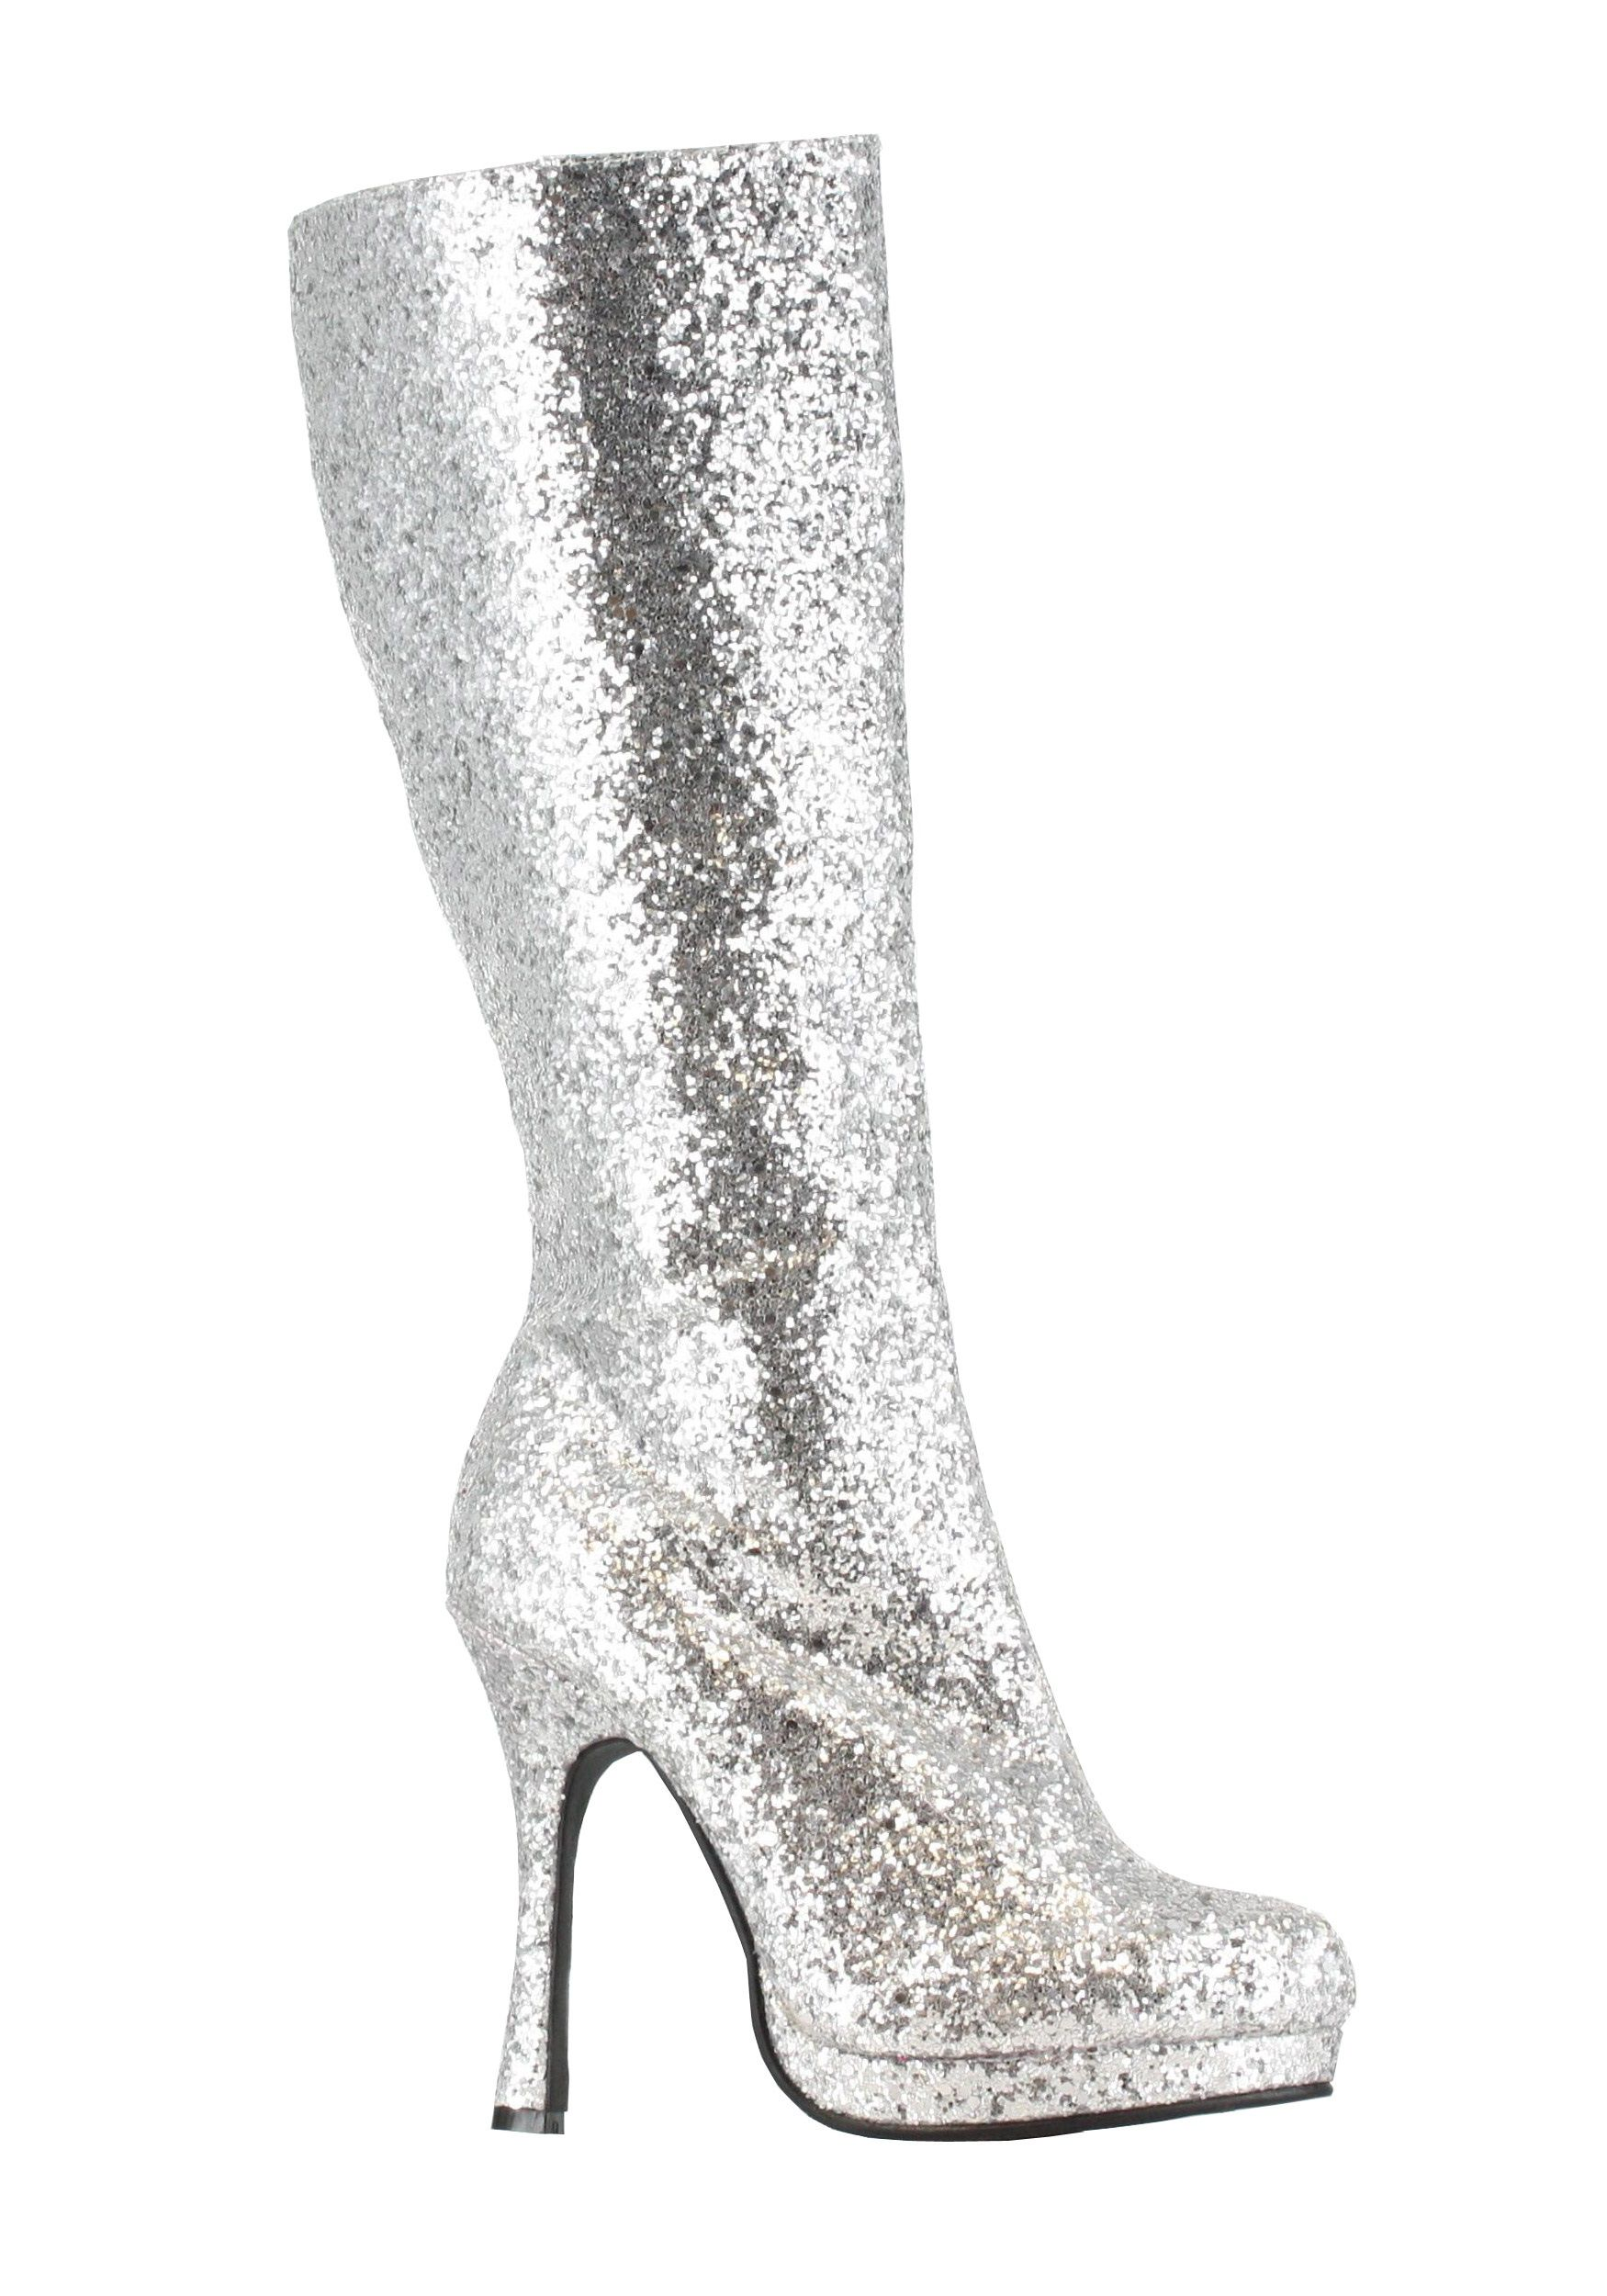 392ed5b6d63 Silver Glitter Boots | SILVER SPARKLES | High heels for kids ...